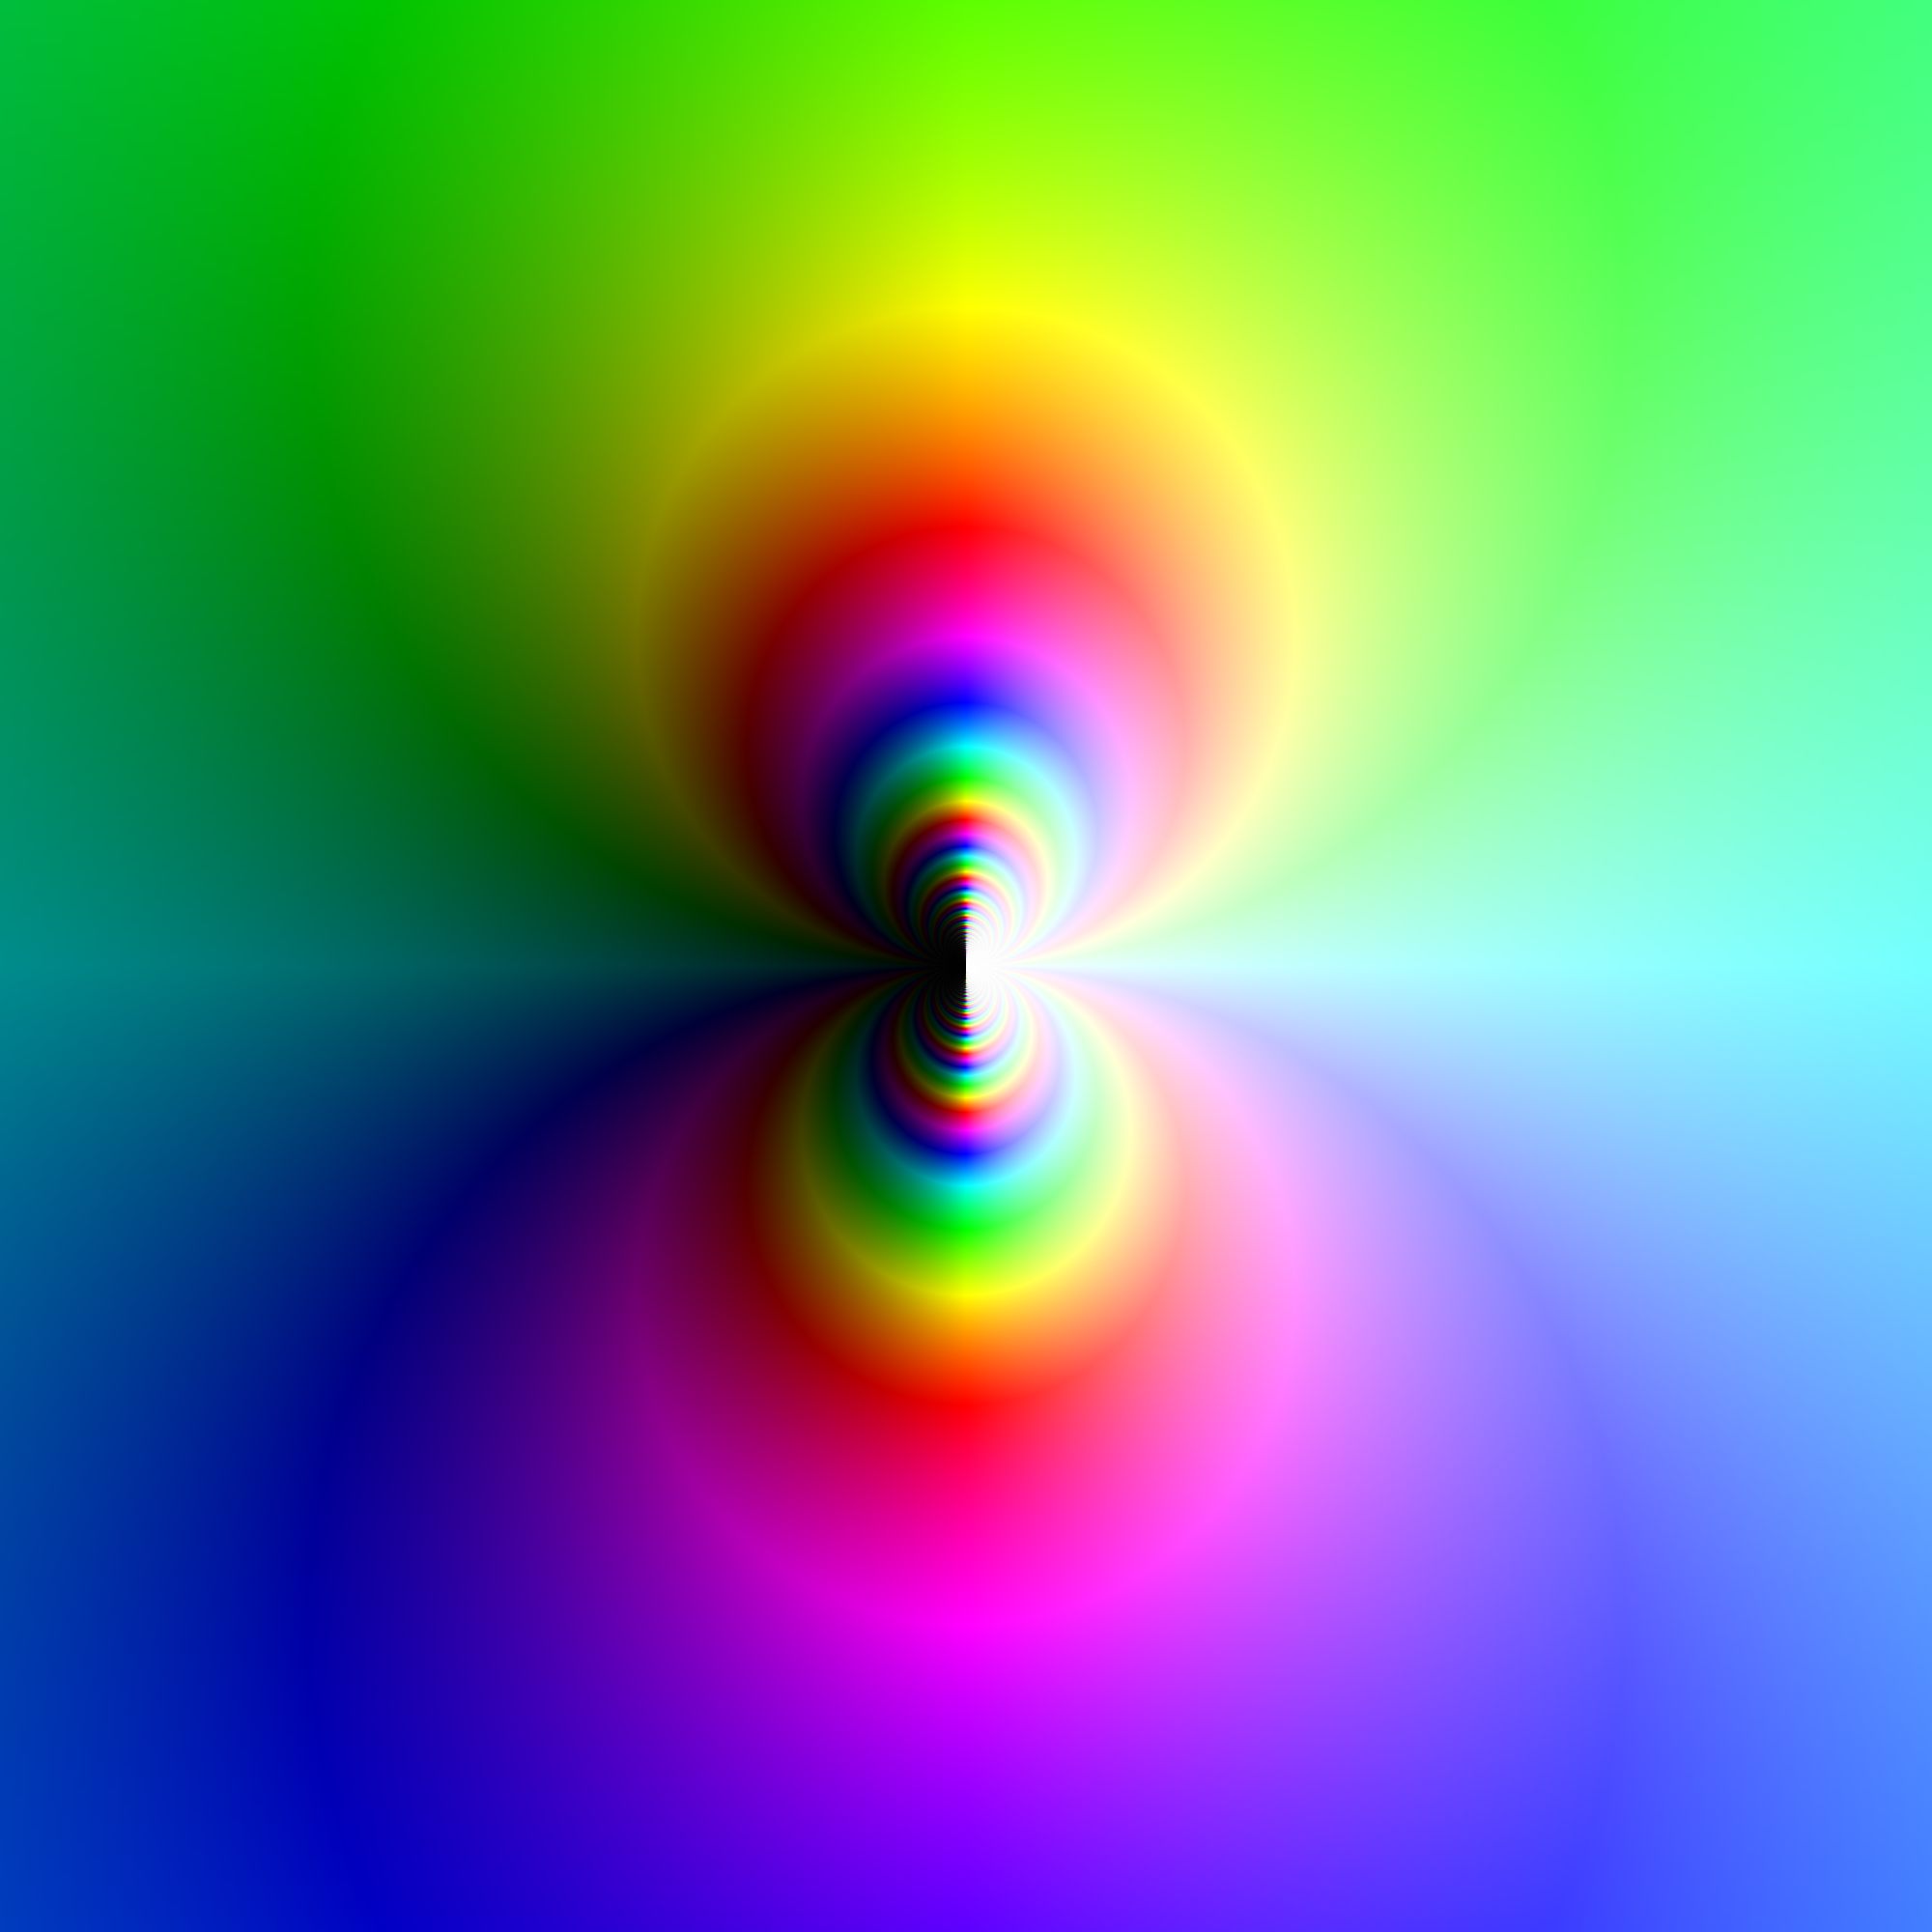 File:Essential singularity.png - Wikipedia, the free encyclopedia